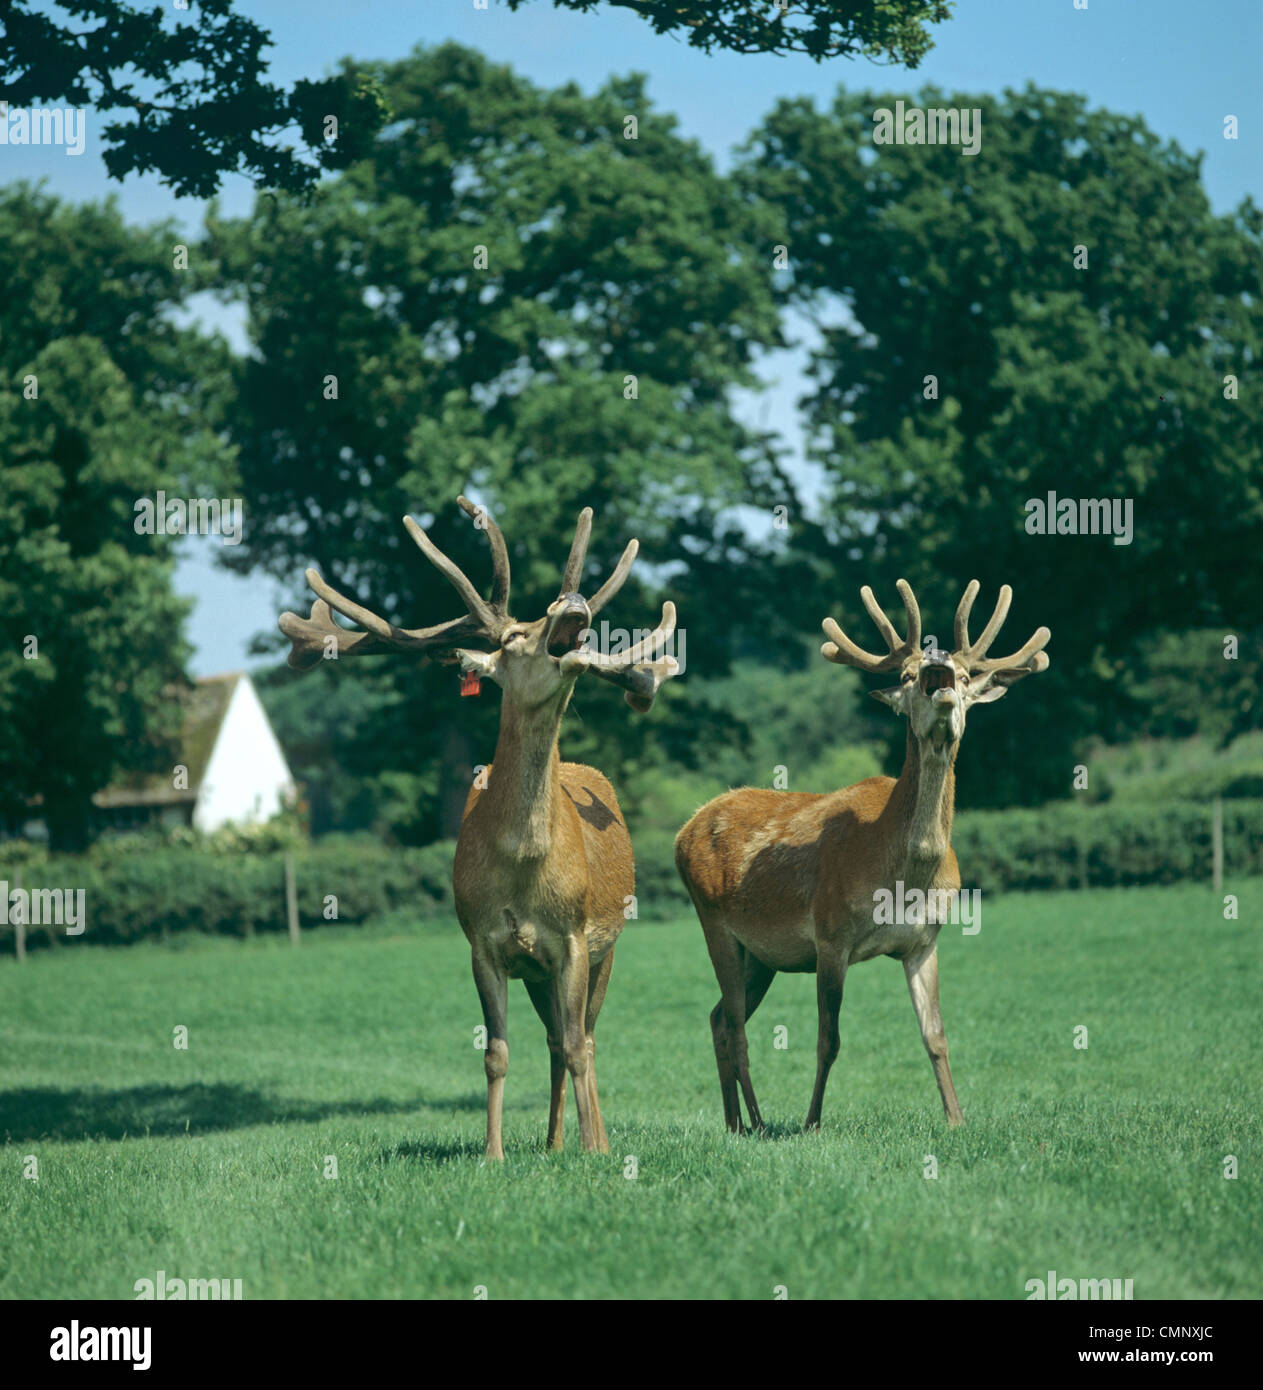 Mature master farmed red deer stags calling with mouths open and well formed antlers - Stock Image